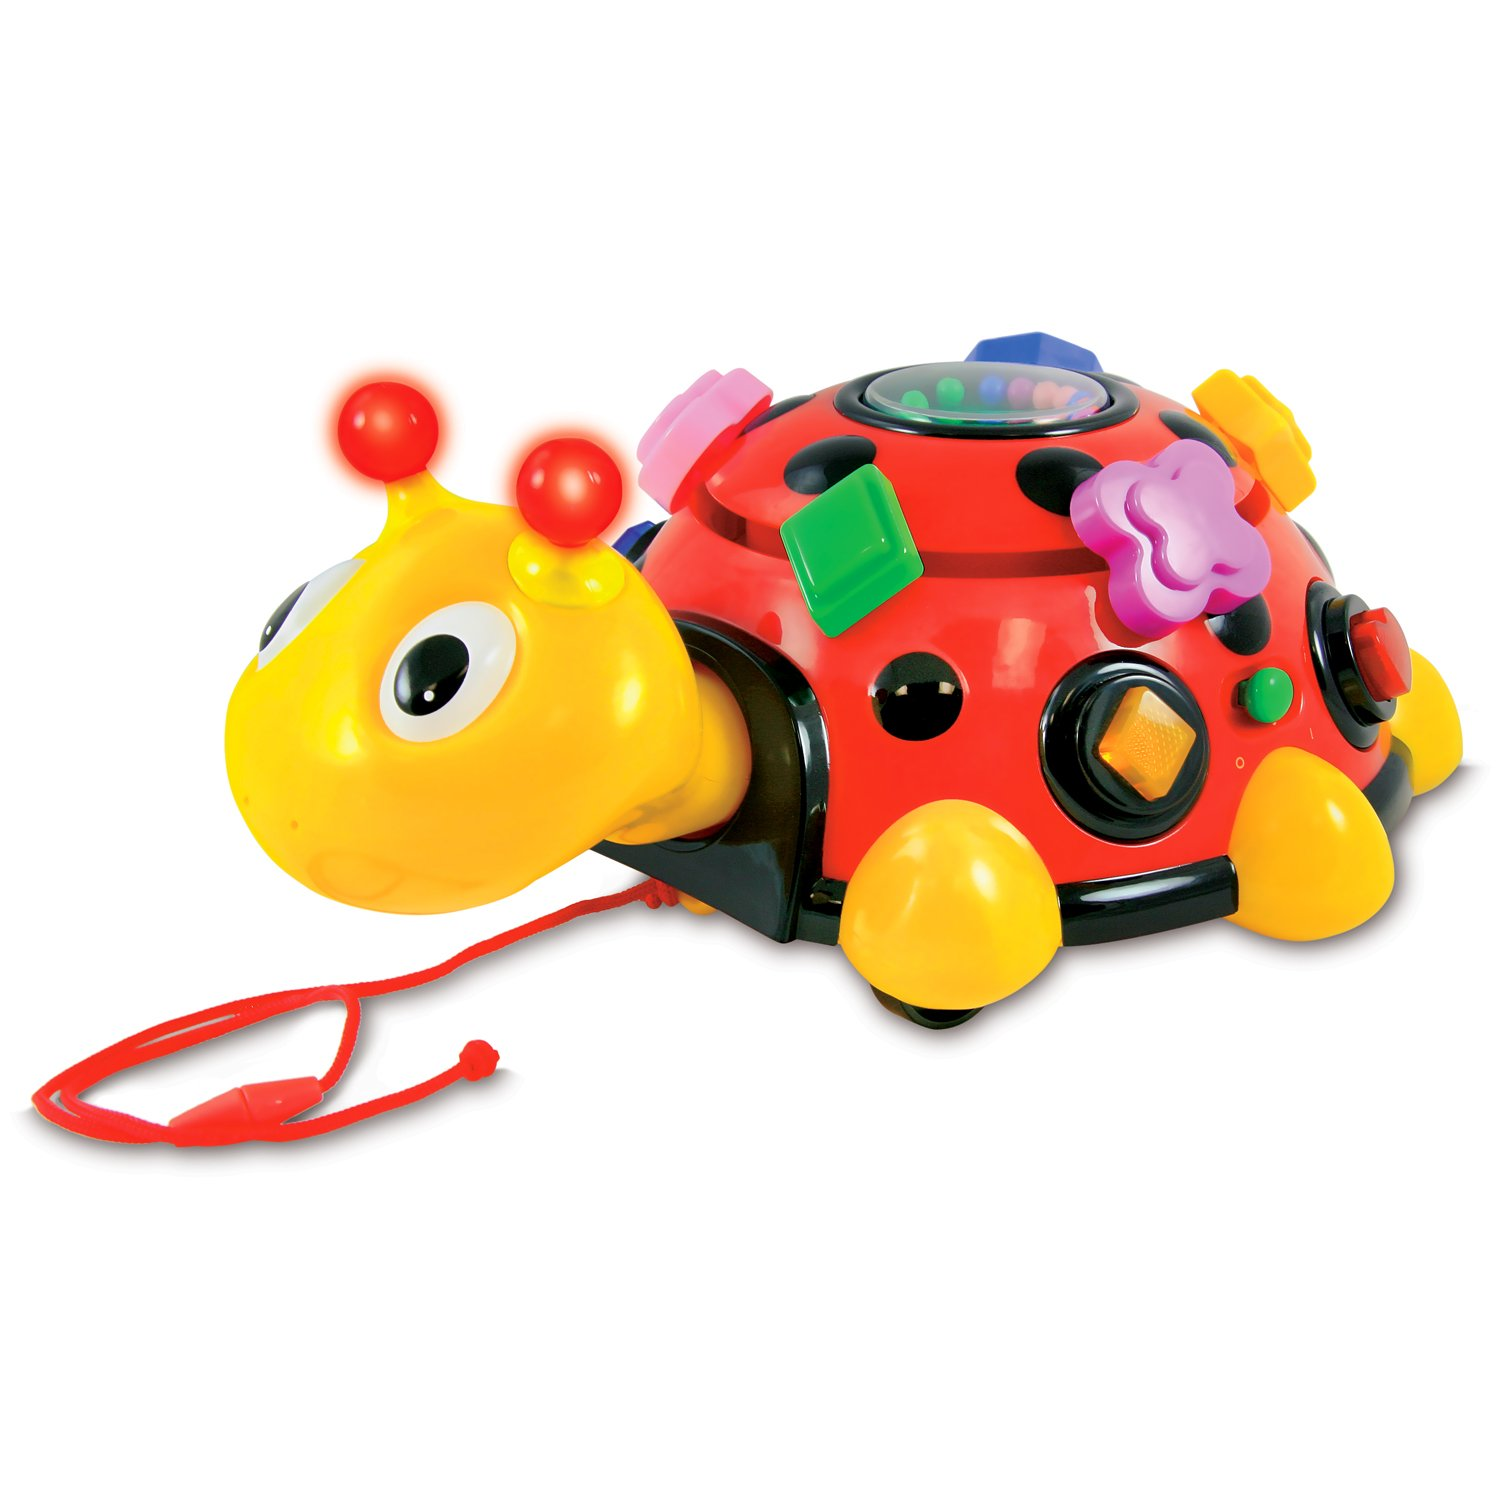 Amazon The Learning Journey Funtime Activity Ladybug Toys